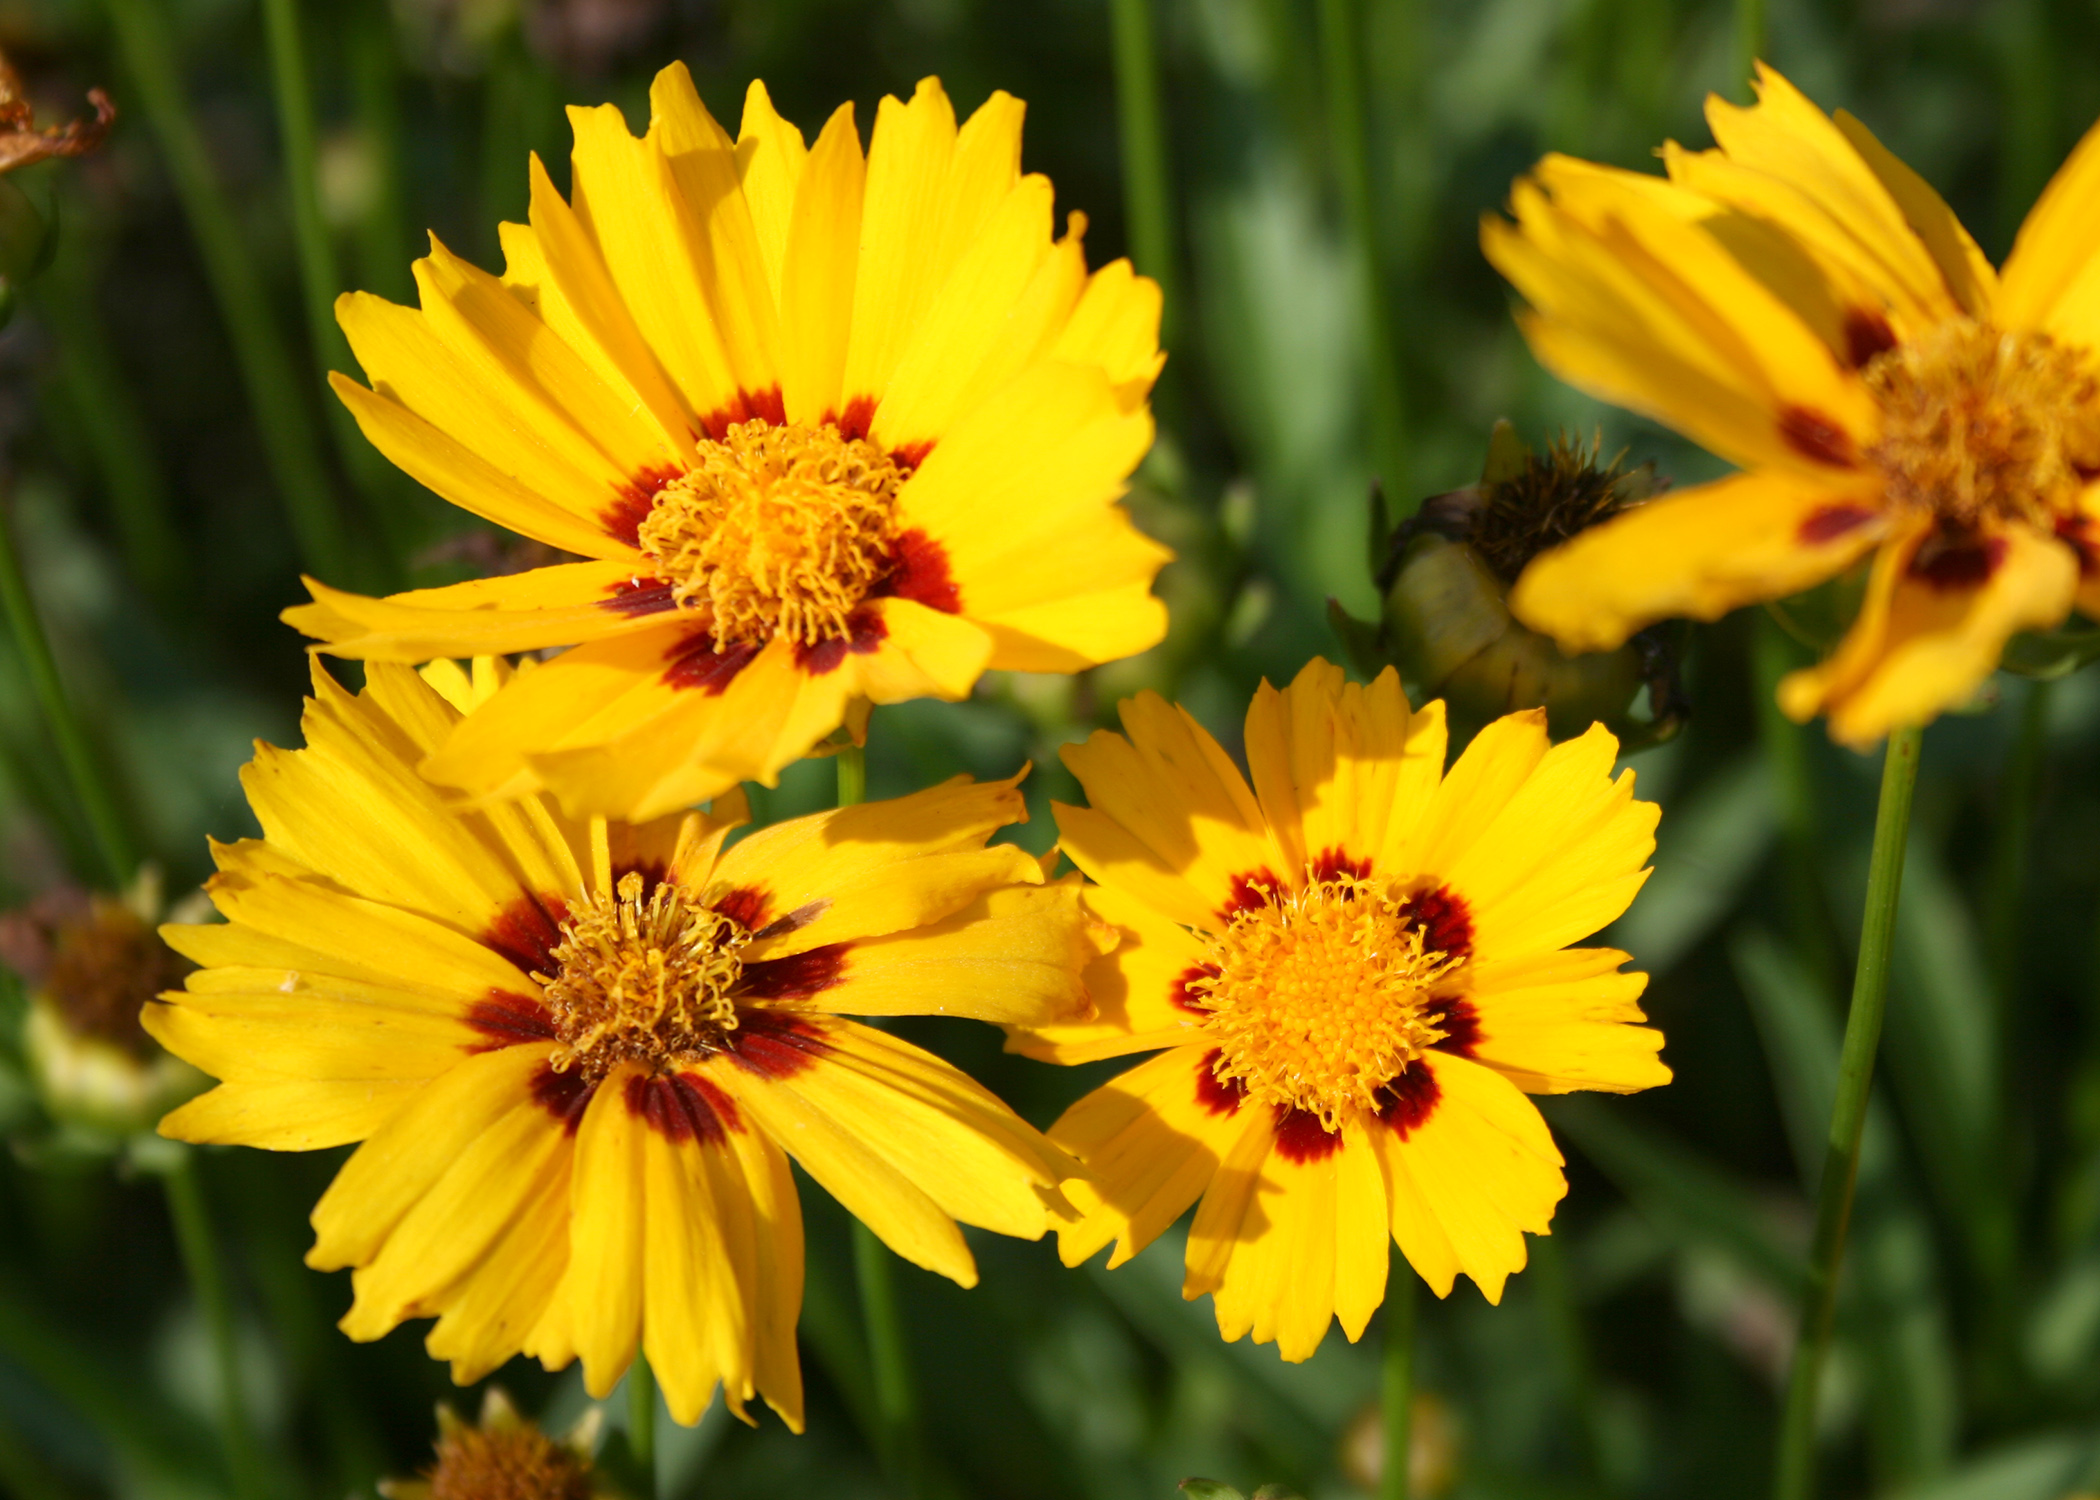 Plant state wildflower coreopsis in landscapes mississippi state the huge flowers of coreopsis corey yellow are deep bold yellow with maroon center splotches mightylinksfo